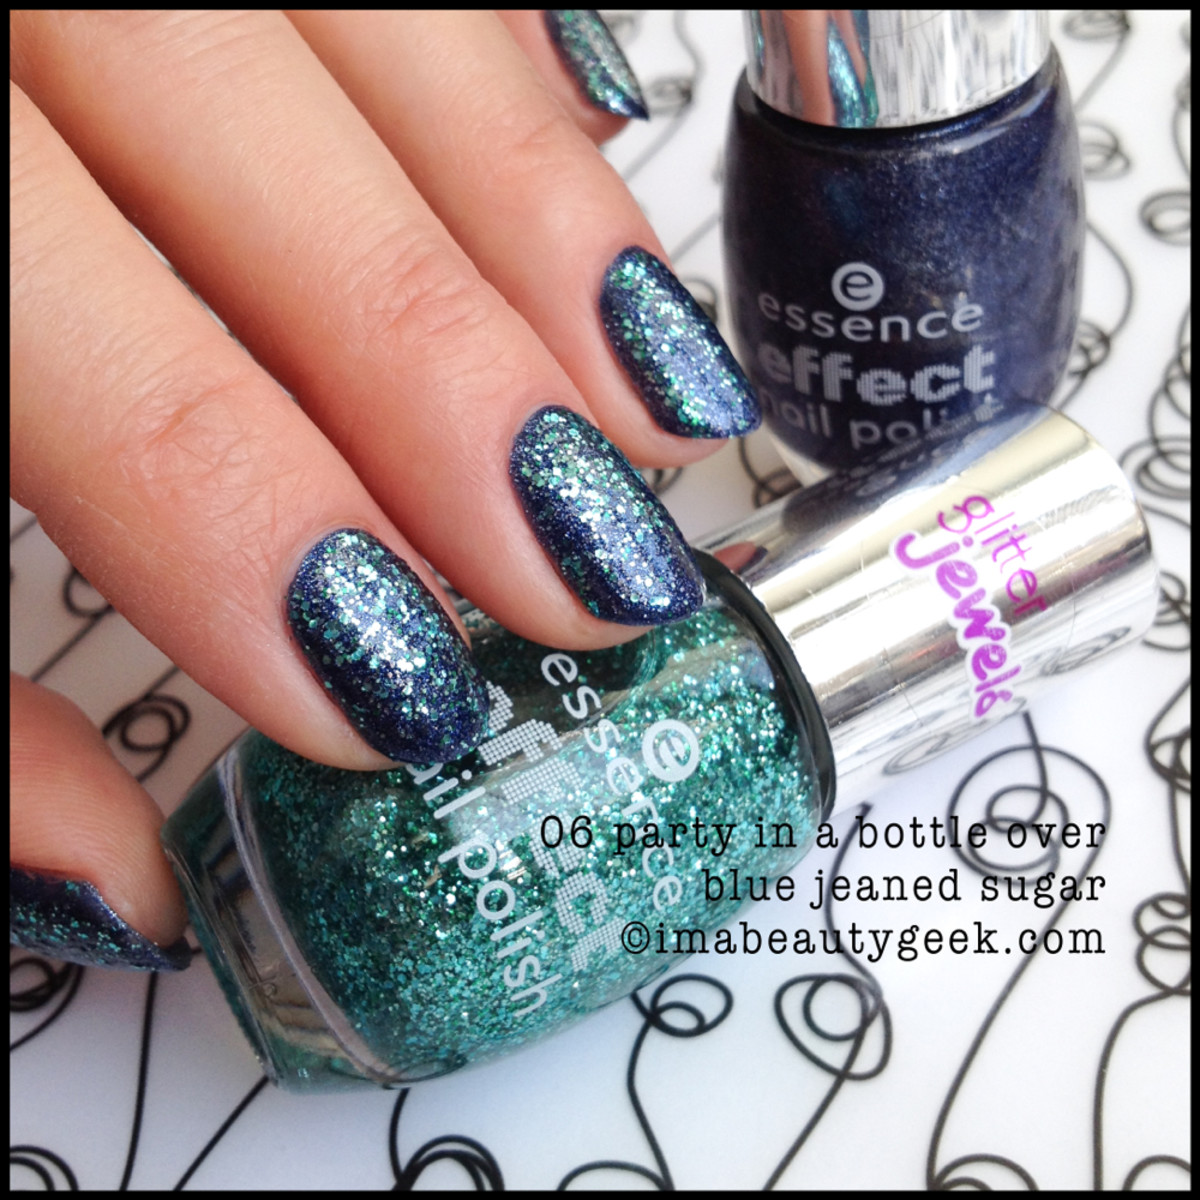 Essence Polish Party in a Bottle over Essence Blue Jeaned